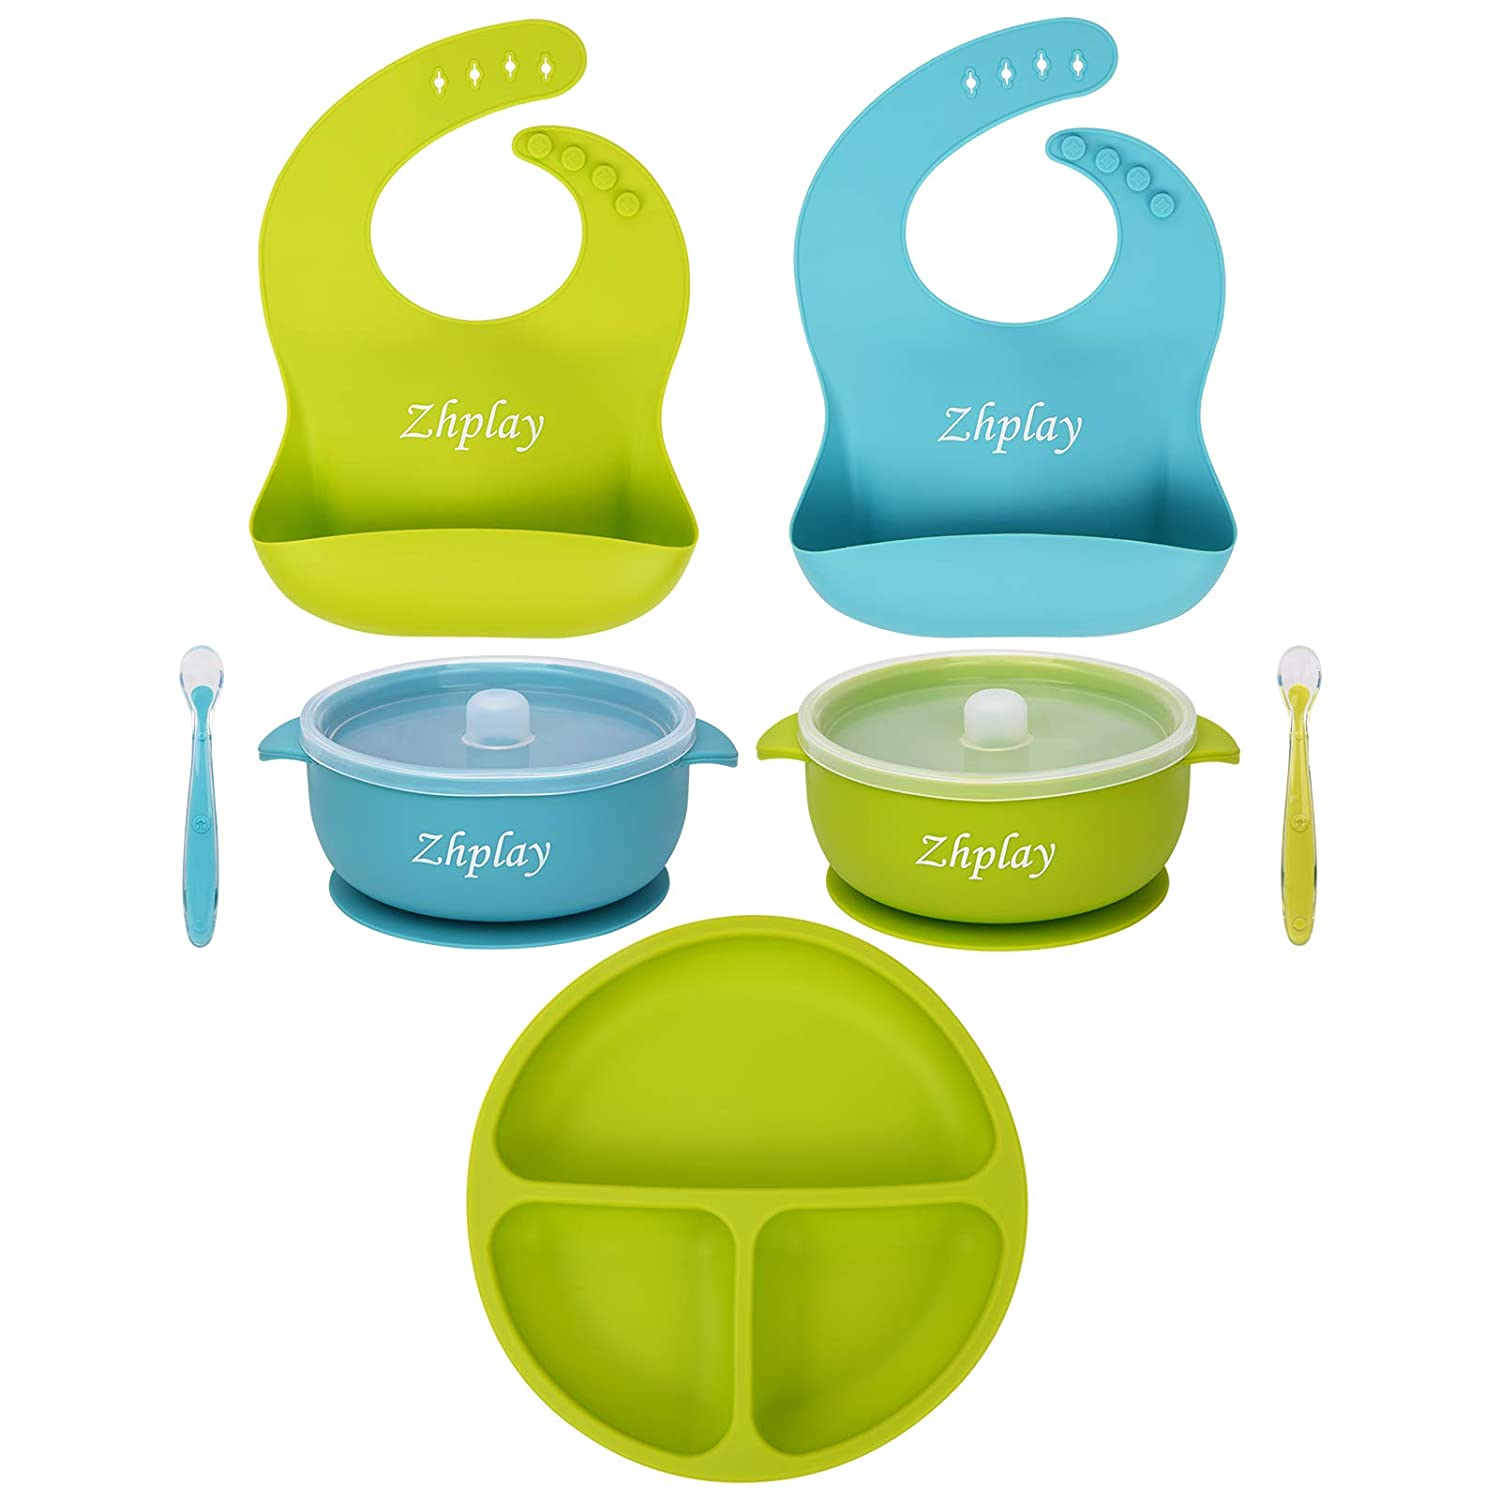 7 Piece Baby Feeding Set,2 Silicone Baby Bibs,2 Strong Suction Bowl&2 Soft Spoon Set,1 Divided Plate Suction Bowl,Food Grade Silicone,Safe and Clean,Best Gift for Baby